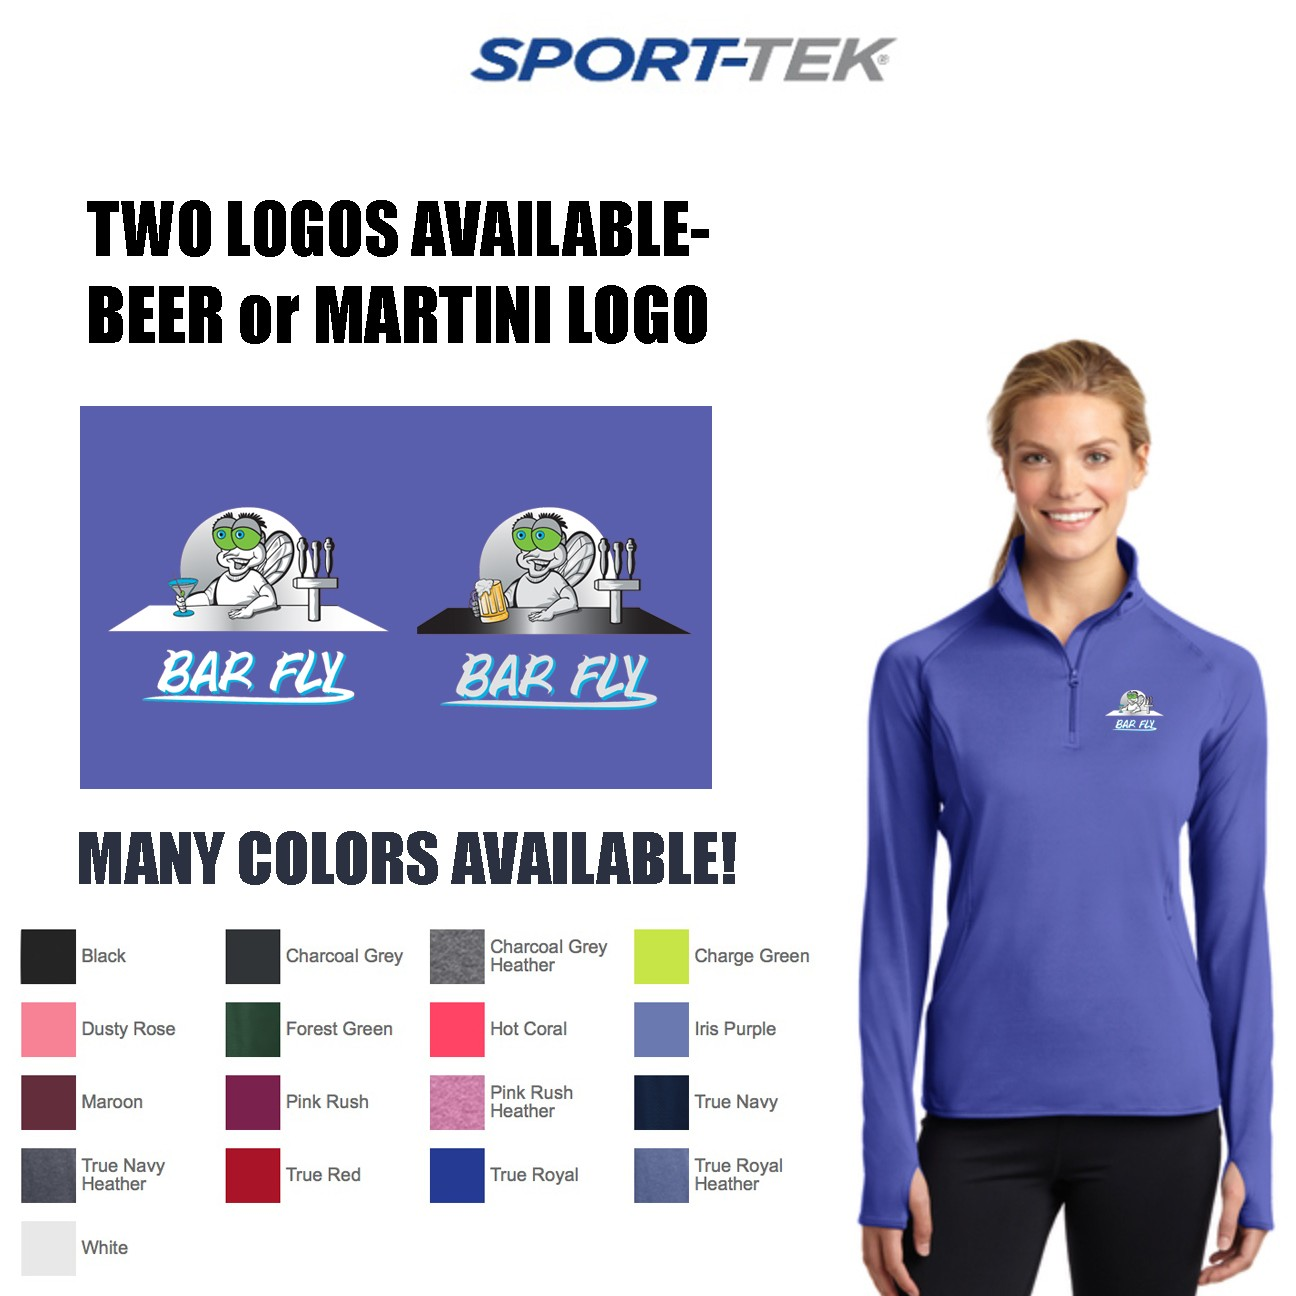 Bar Fly Apparel 1/2 Zip Sport-Tek Sport-Wick Stretch Pullover, Women's Fit